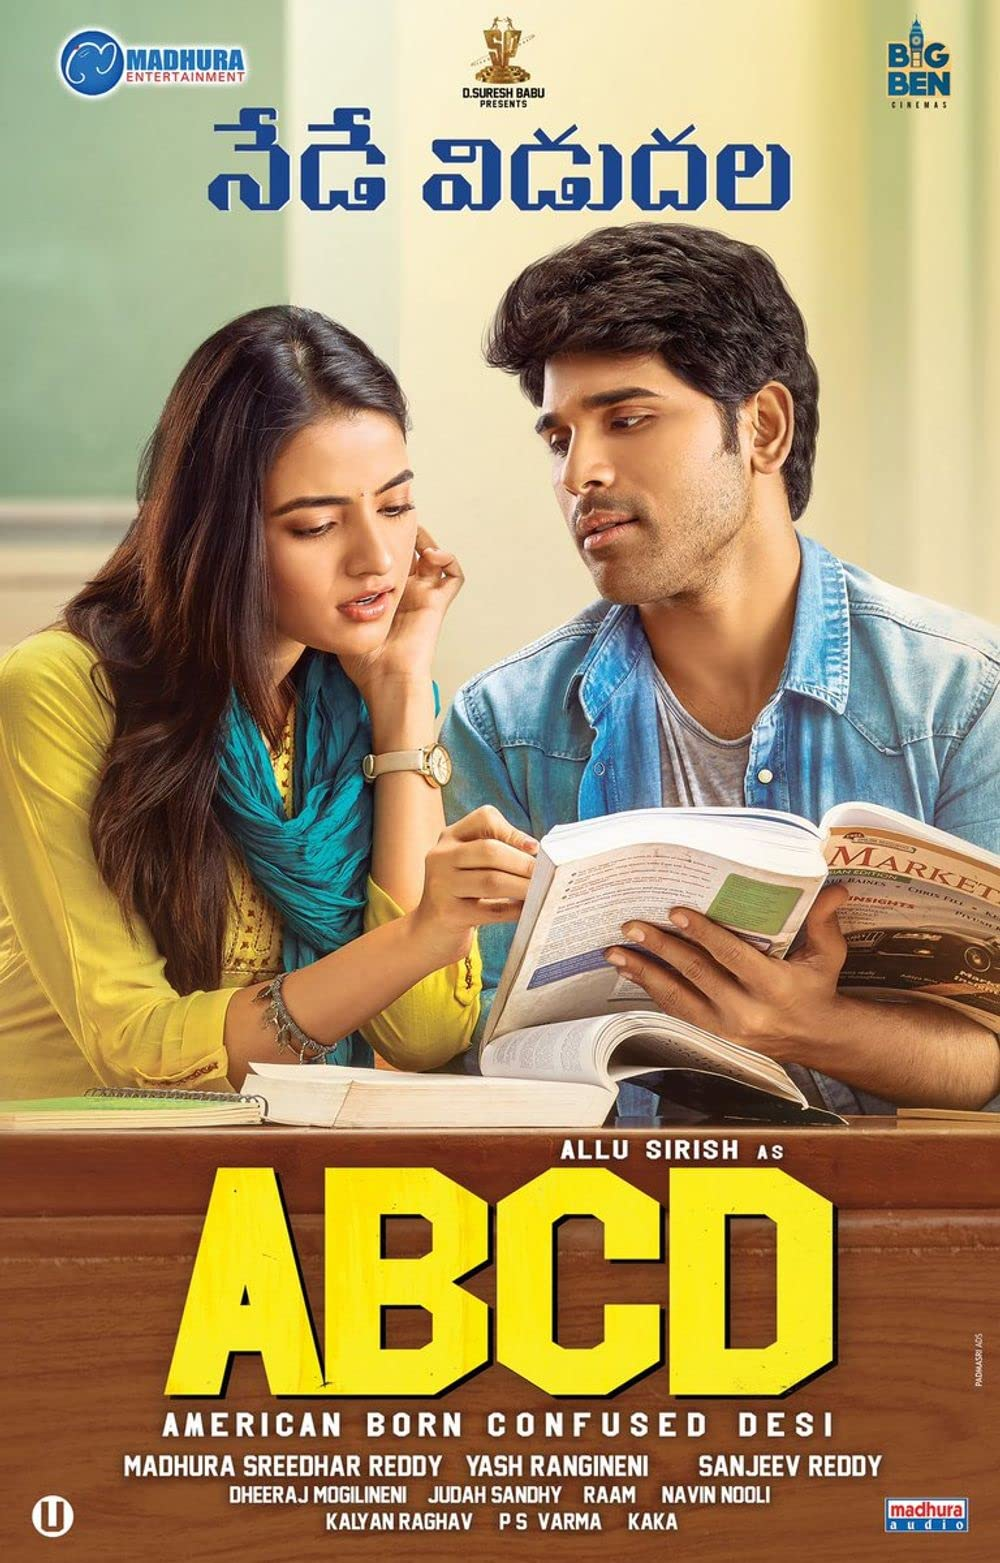 ABCD American Born Confused Desi (2021) South Hindi Dubbed Full Movie HDRip